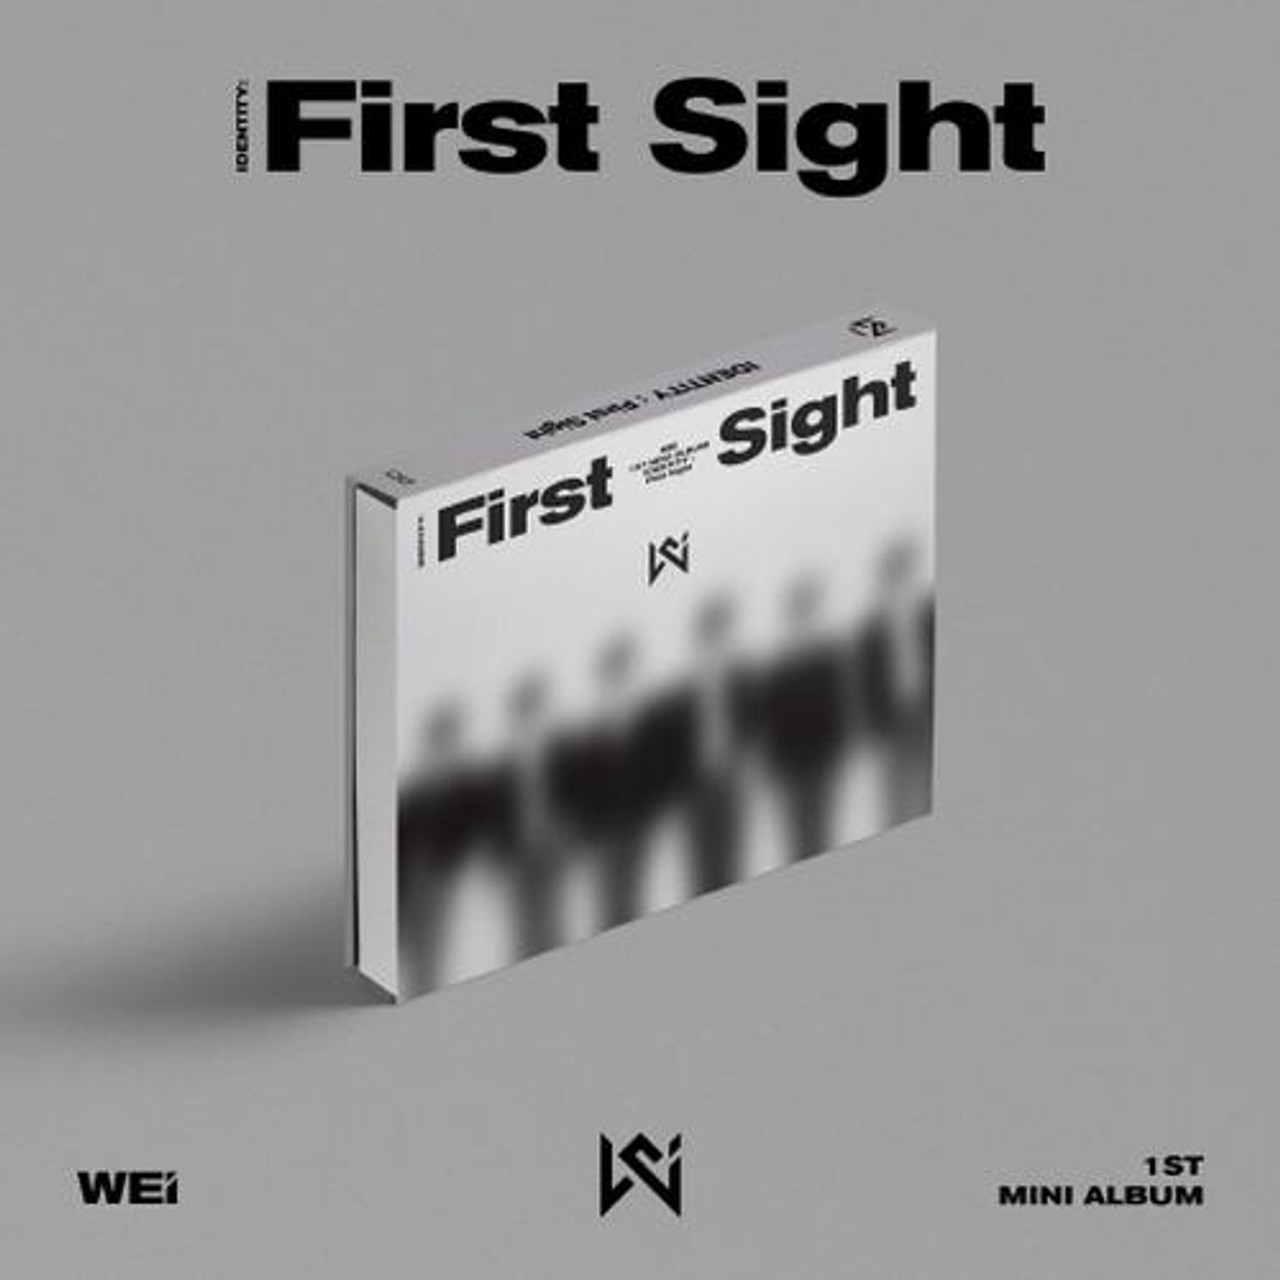 WEi - 1st Mini [IDENTITY : First Sight] (i Ver.) + Poster